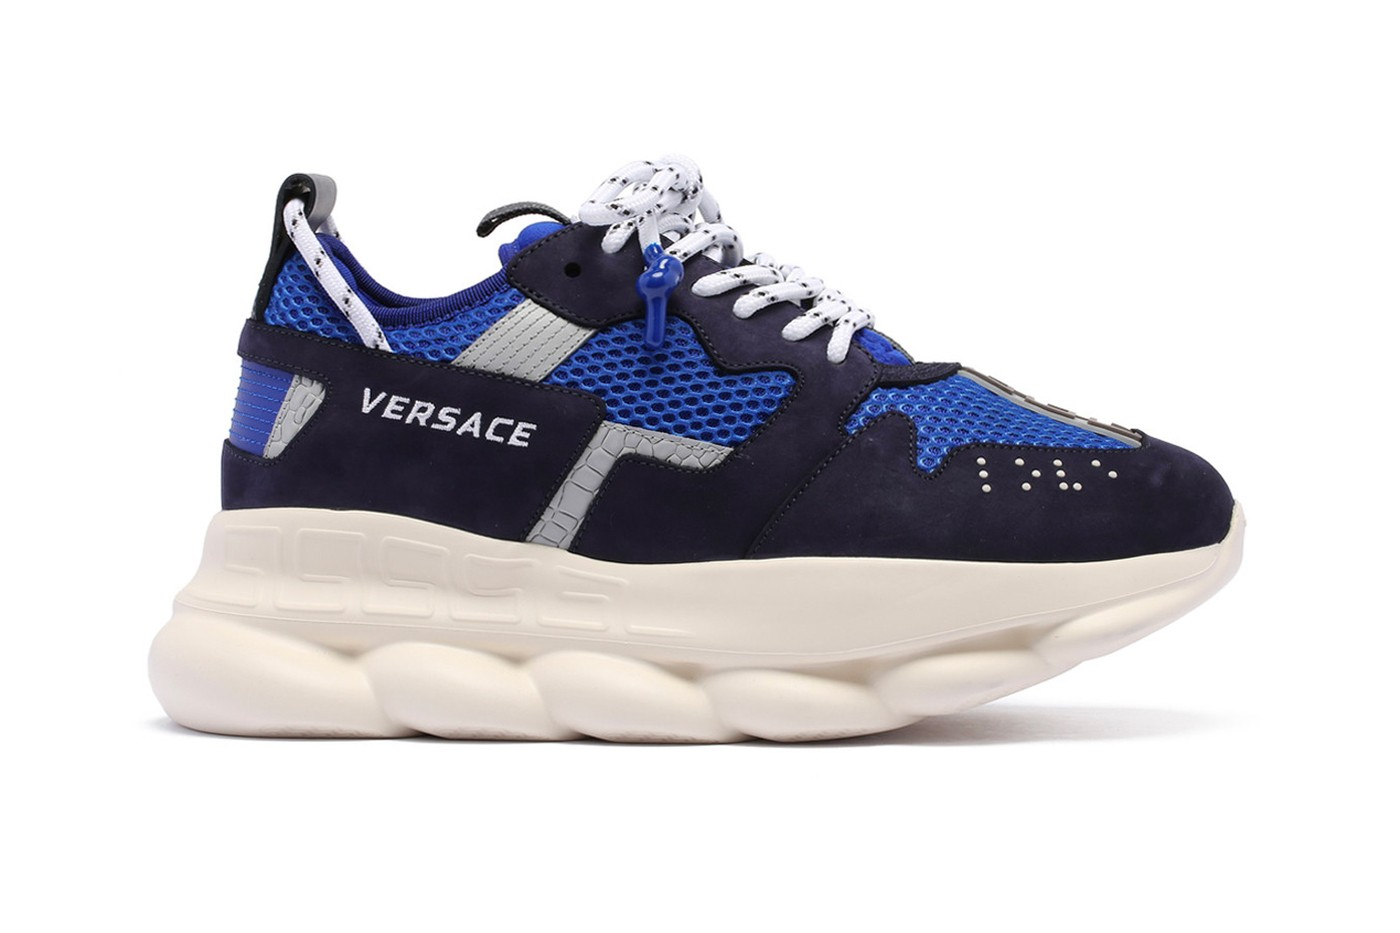 https___hypebeast.com_image_2019_07_versace-chain-reaction-2-sneakers-blue-release-info-01.jpg